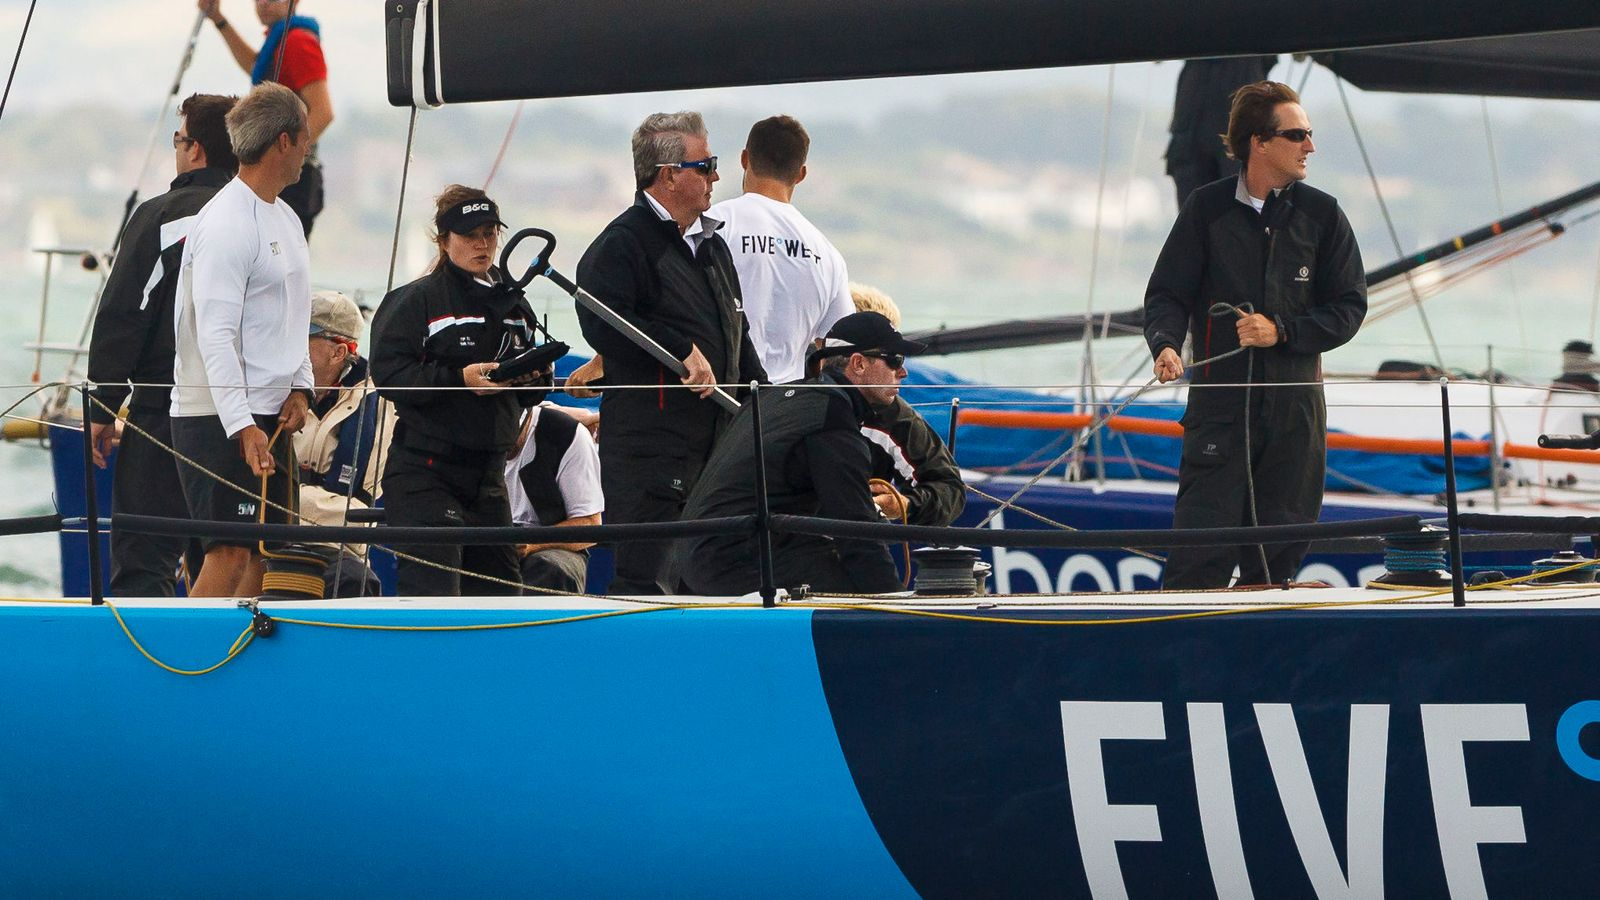 2012 Olympics chief Mills to back 'F1 of sailing'